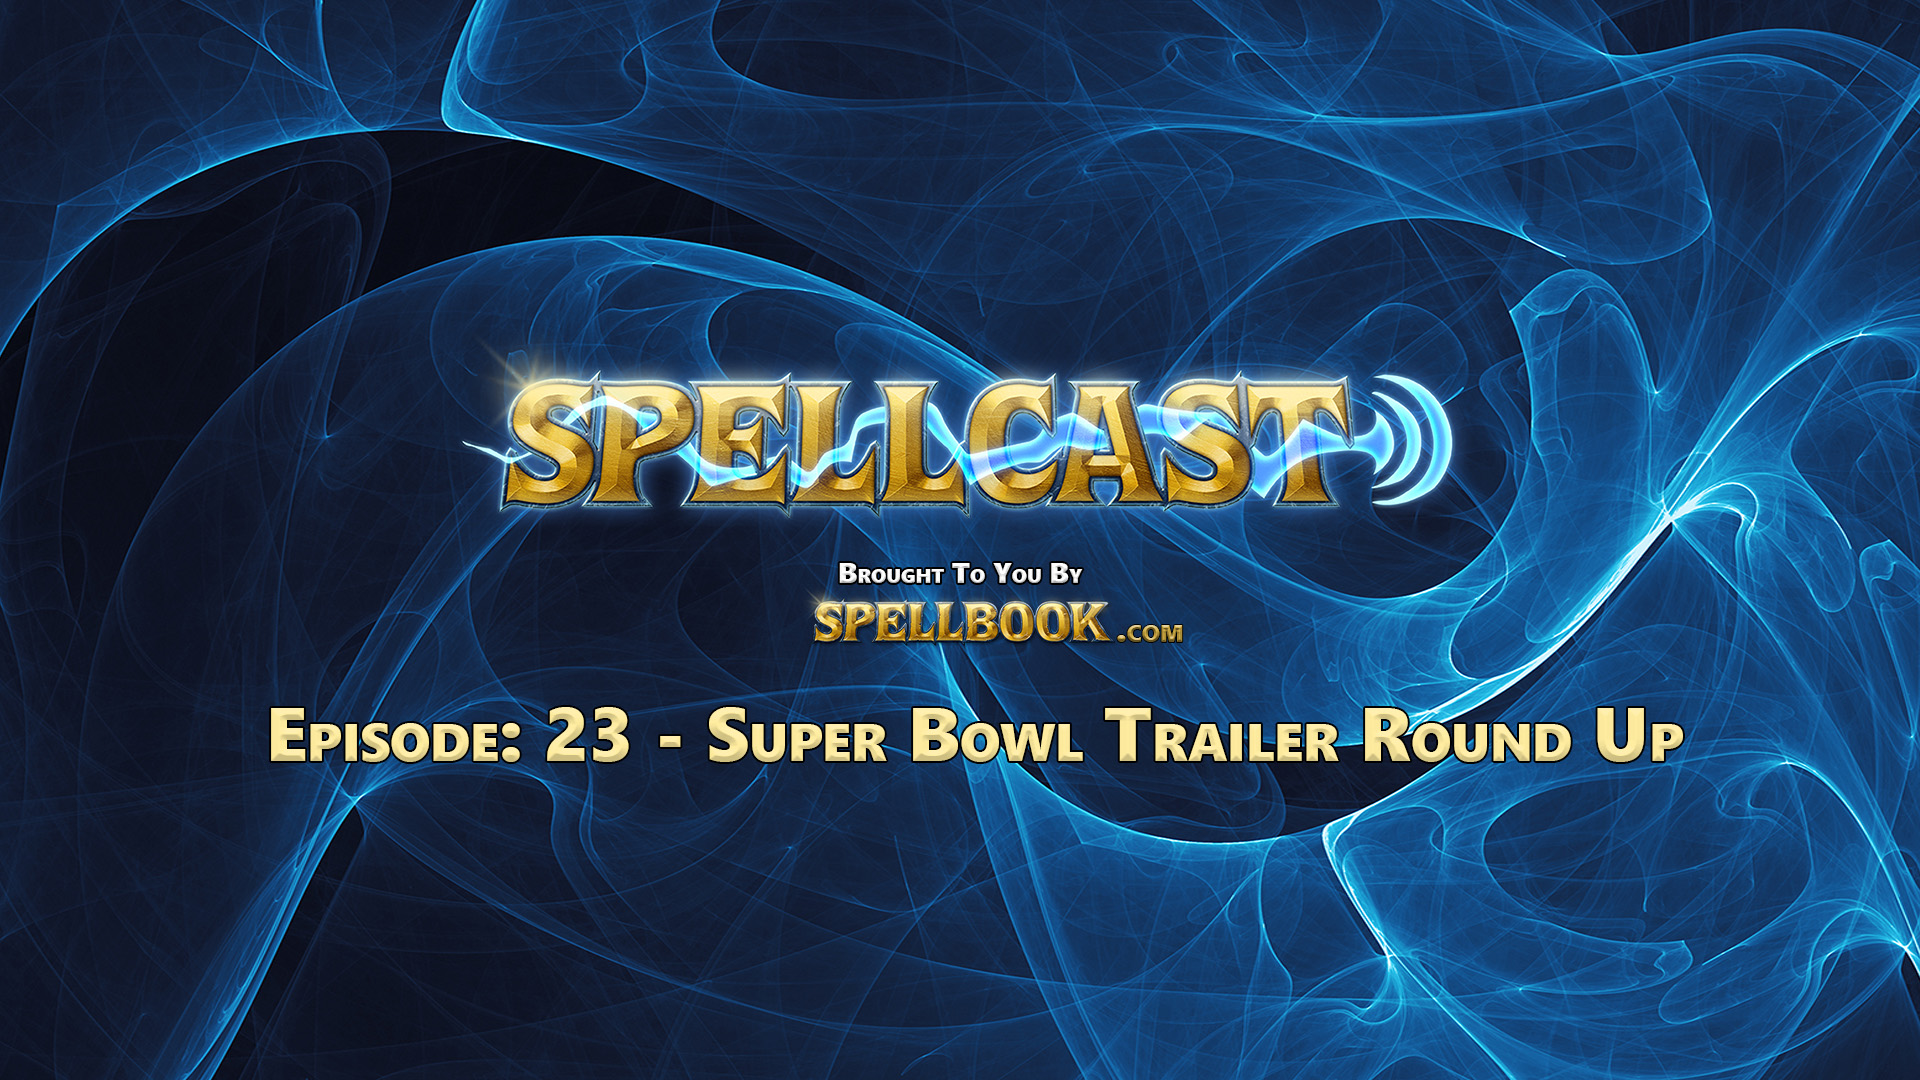 Spellcast Episode: 23 - Super Bowl Trailer Round Up